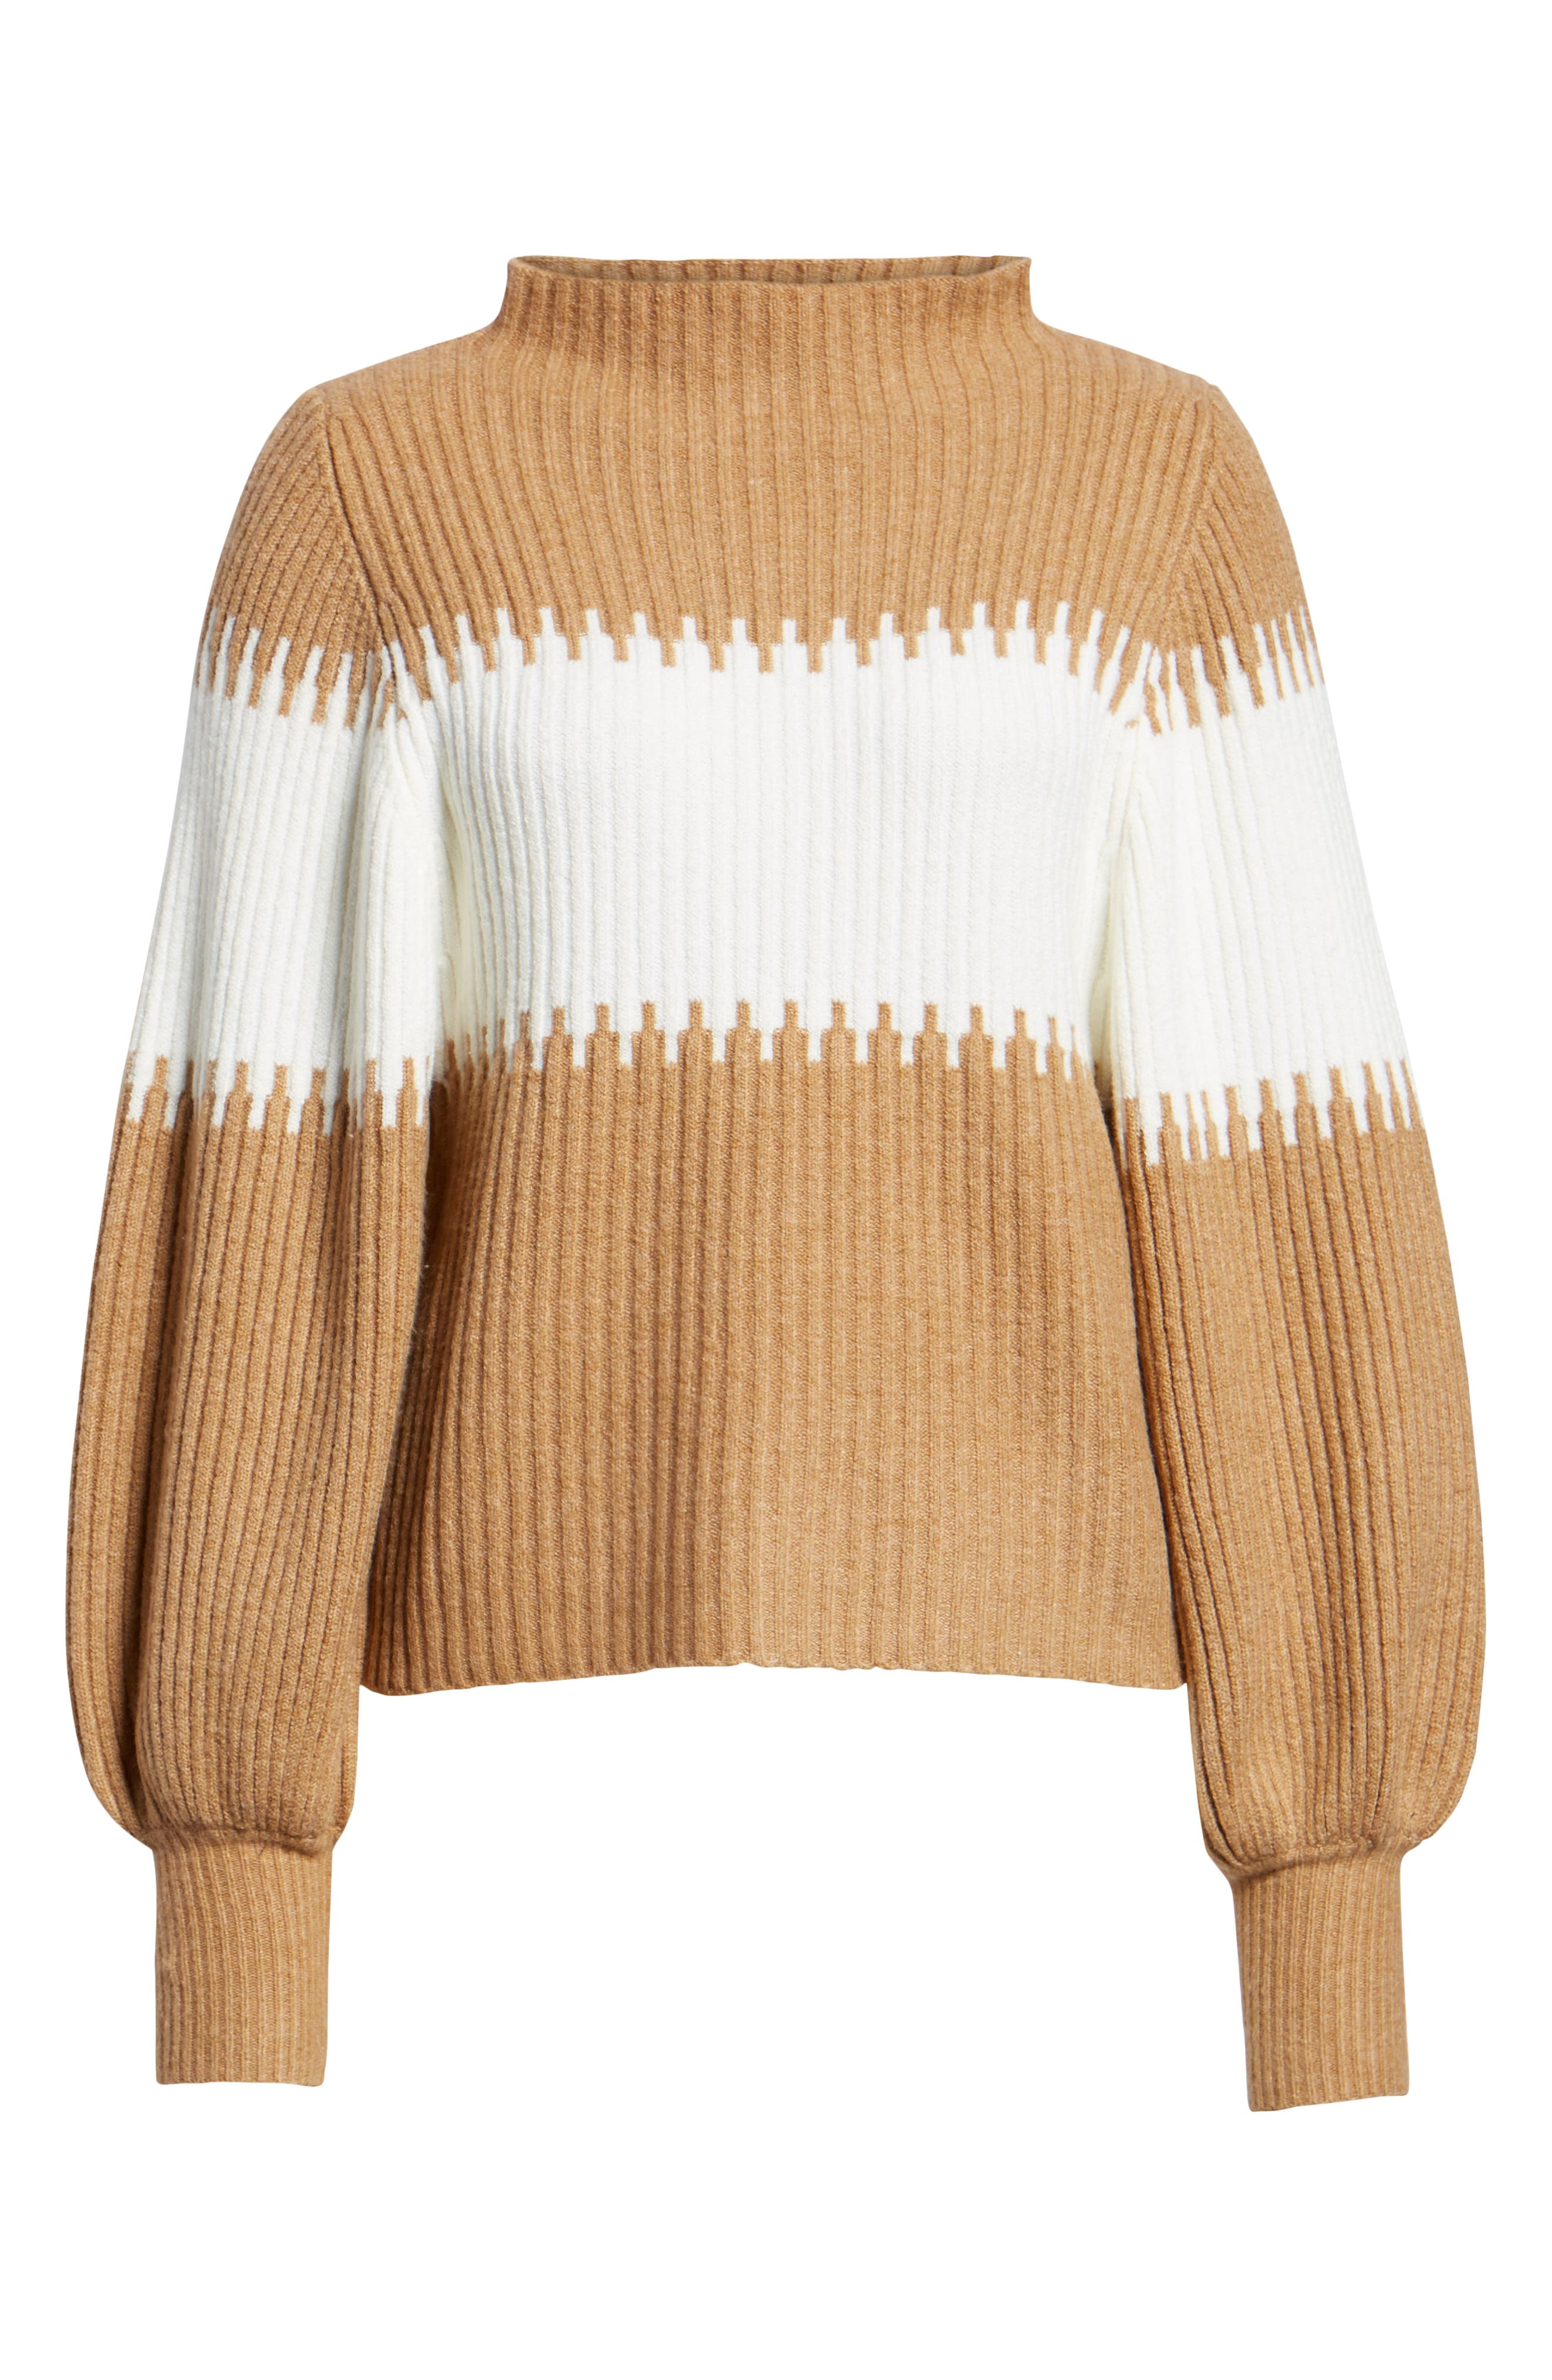 Sofia Funnel Neck Sweater,                             Alternate thumbnail 6, color,                             CAMEL/ WHITE